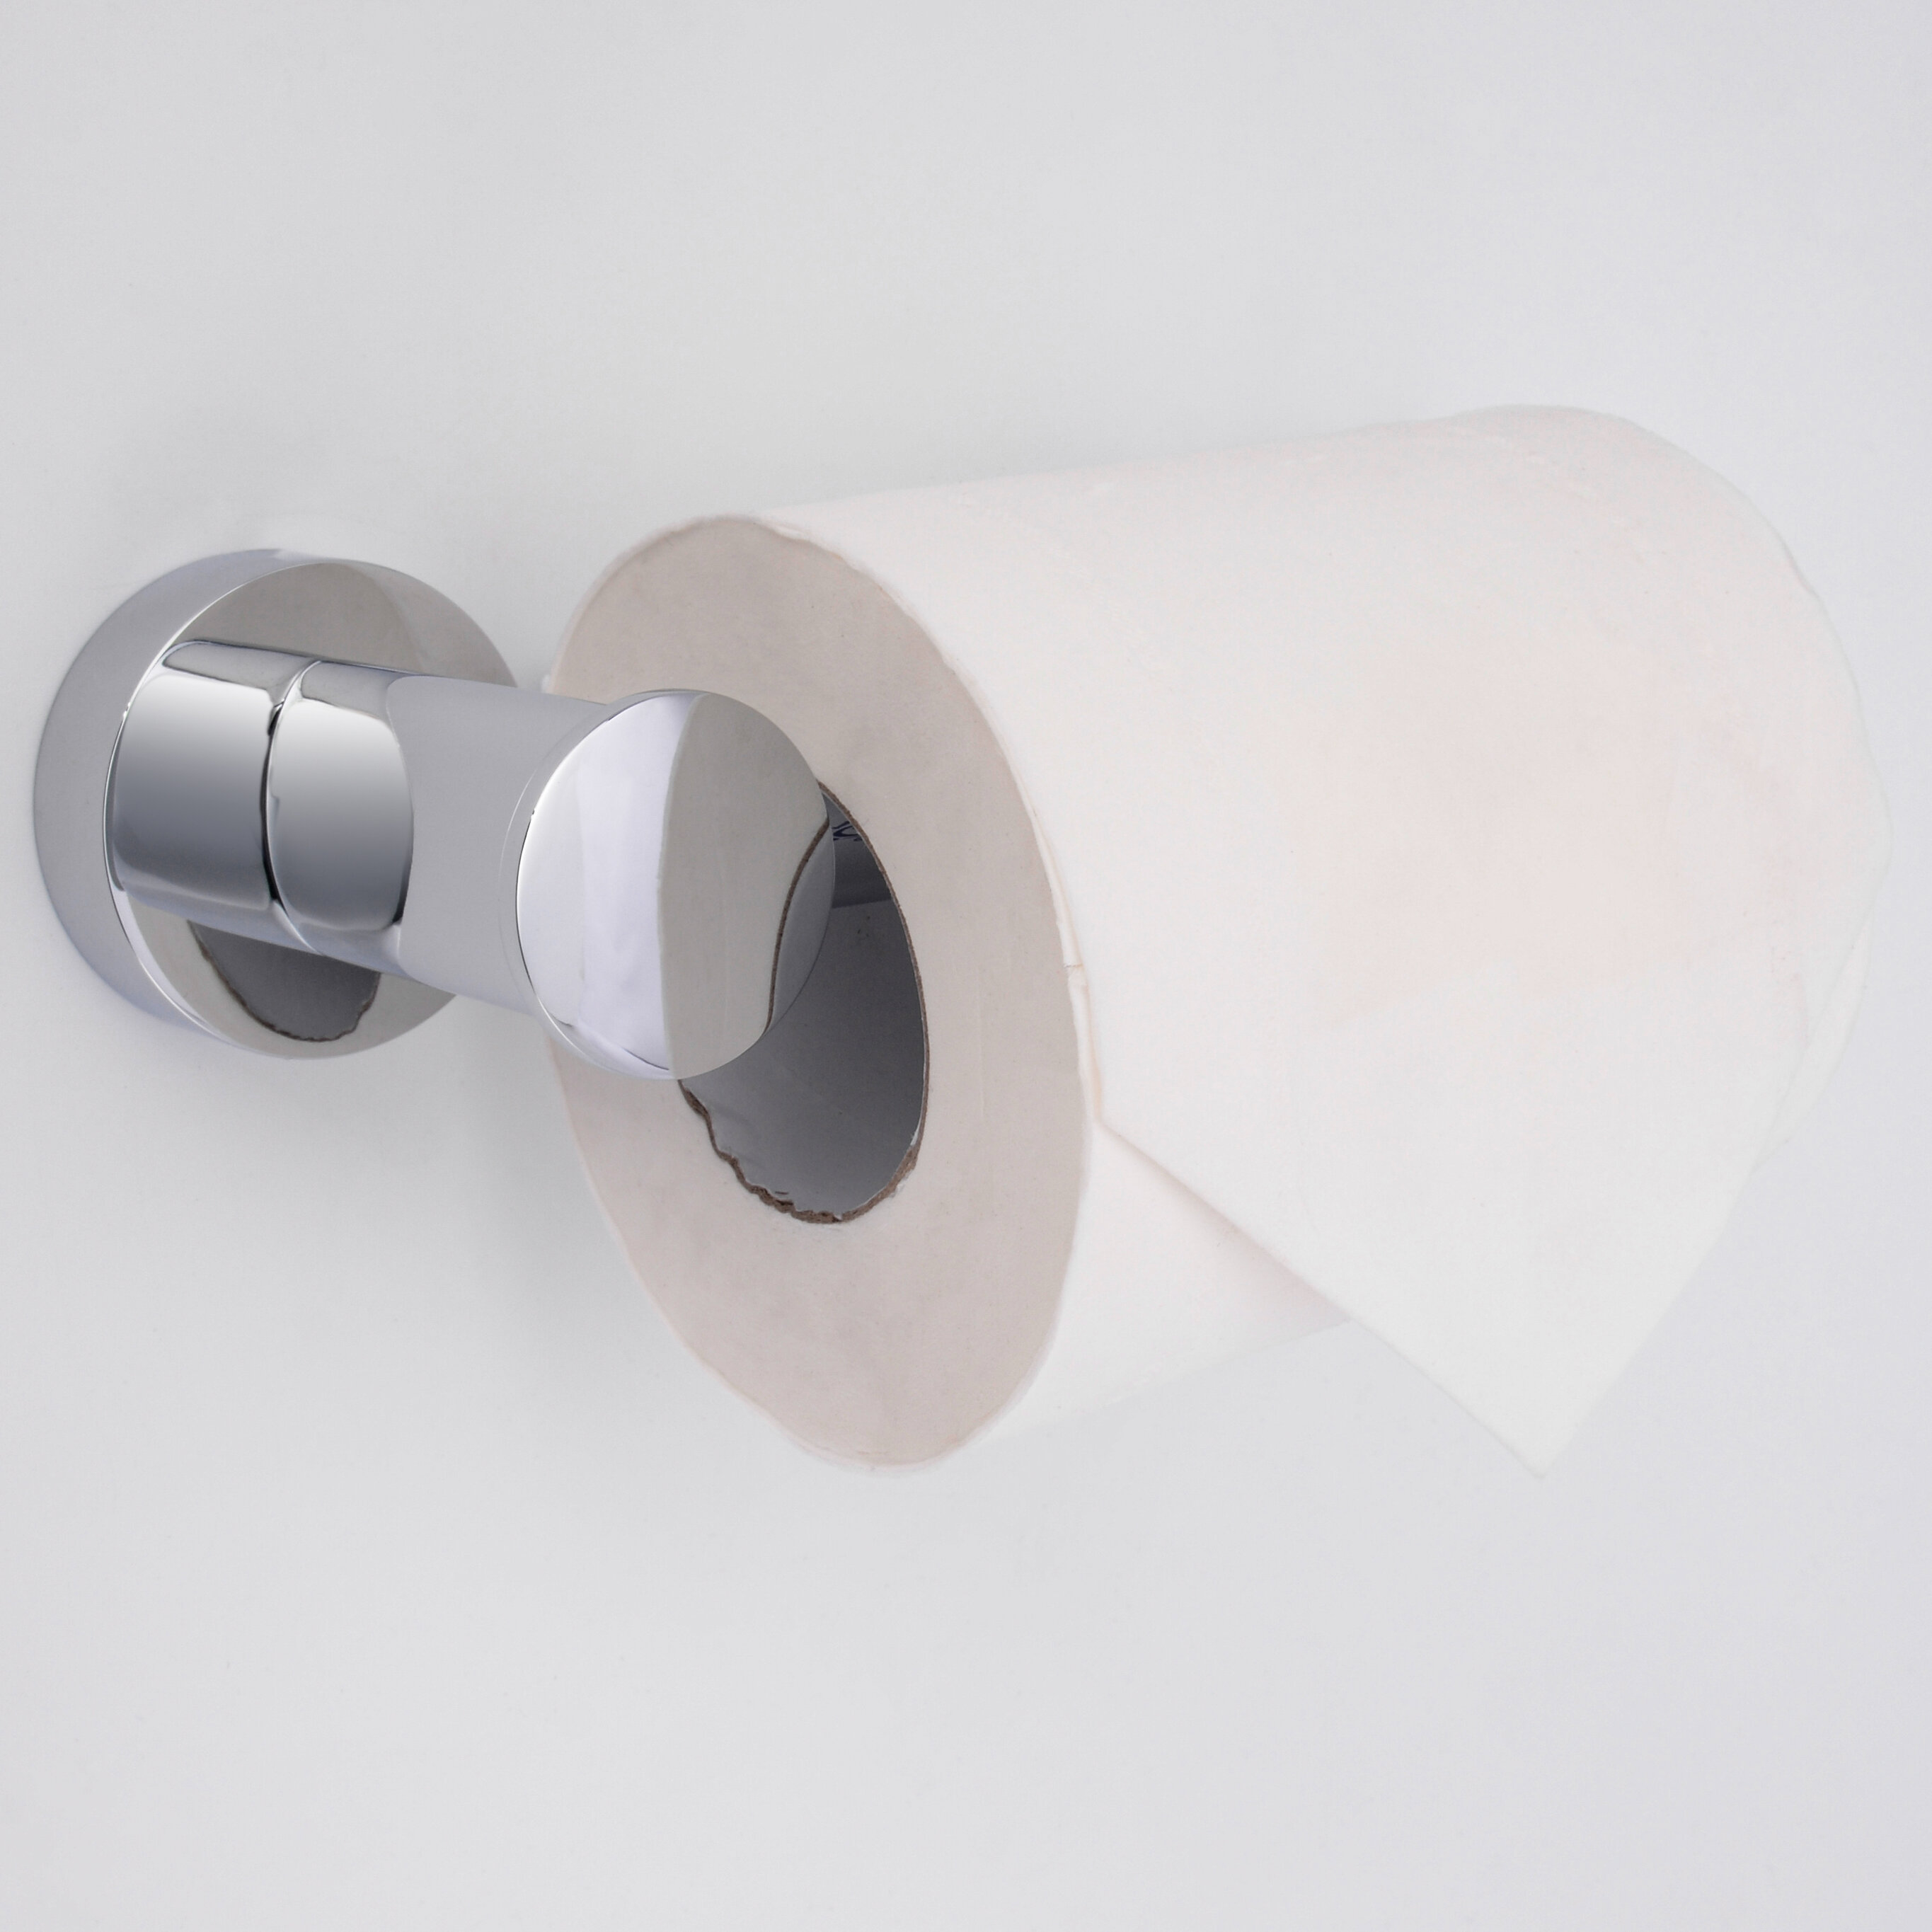 Barclay Toilet Paper Holders You Ll Love In 2021 Wayfair